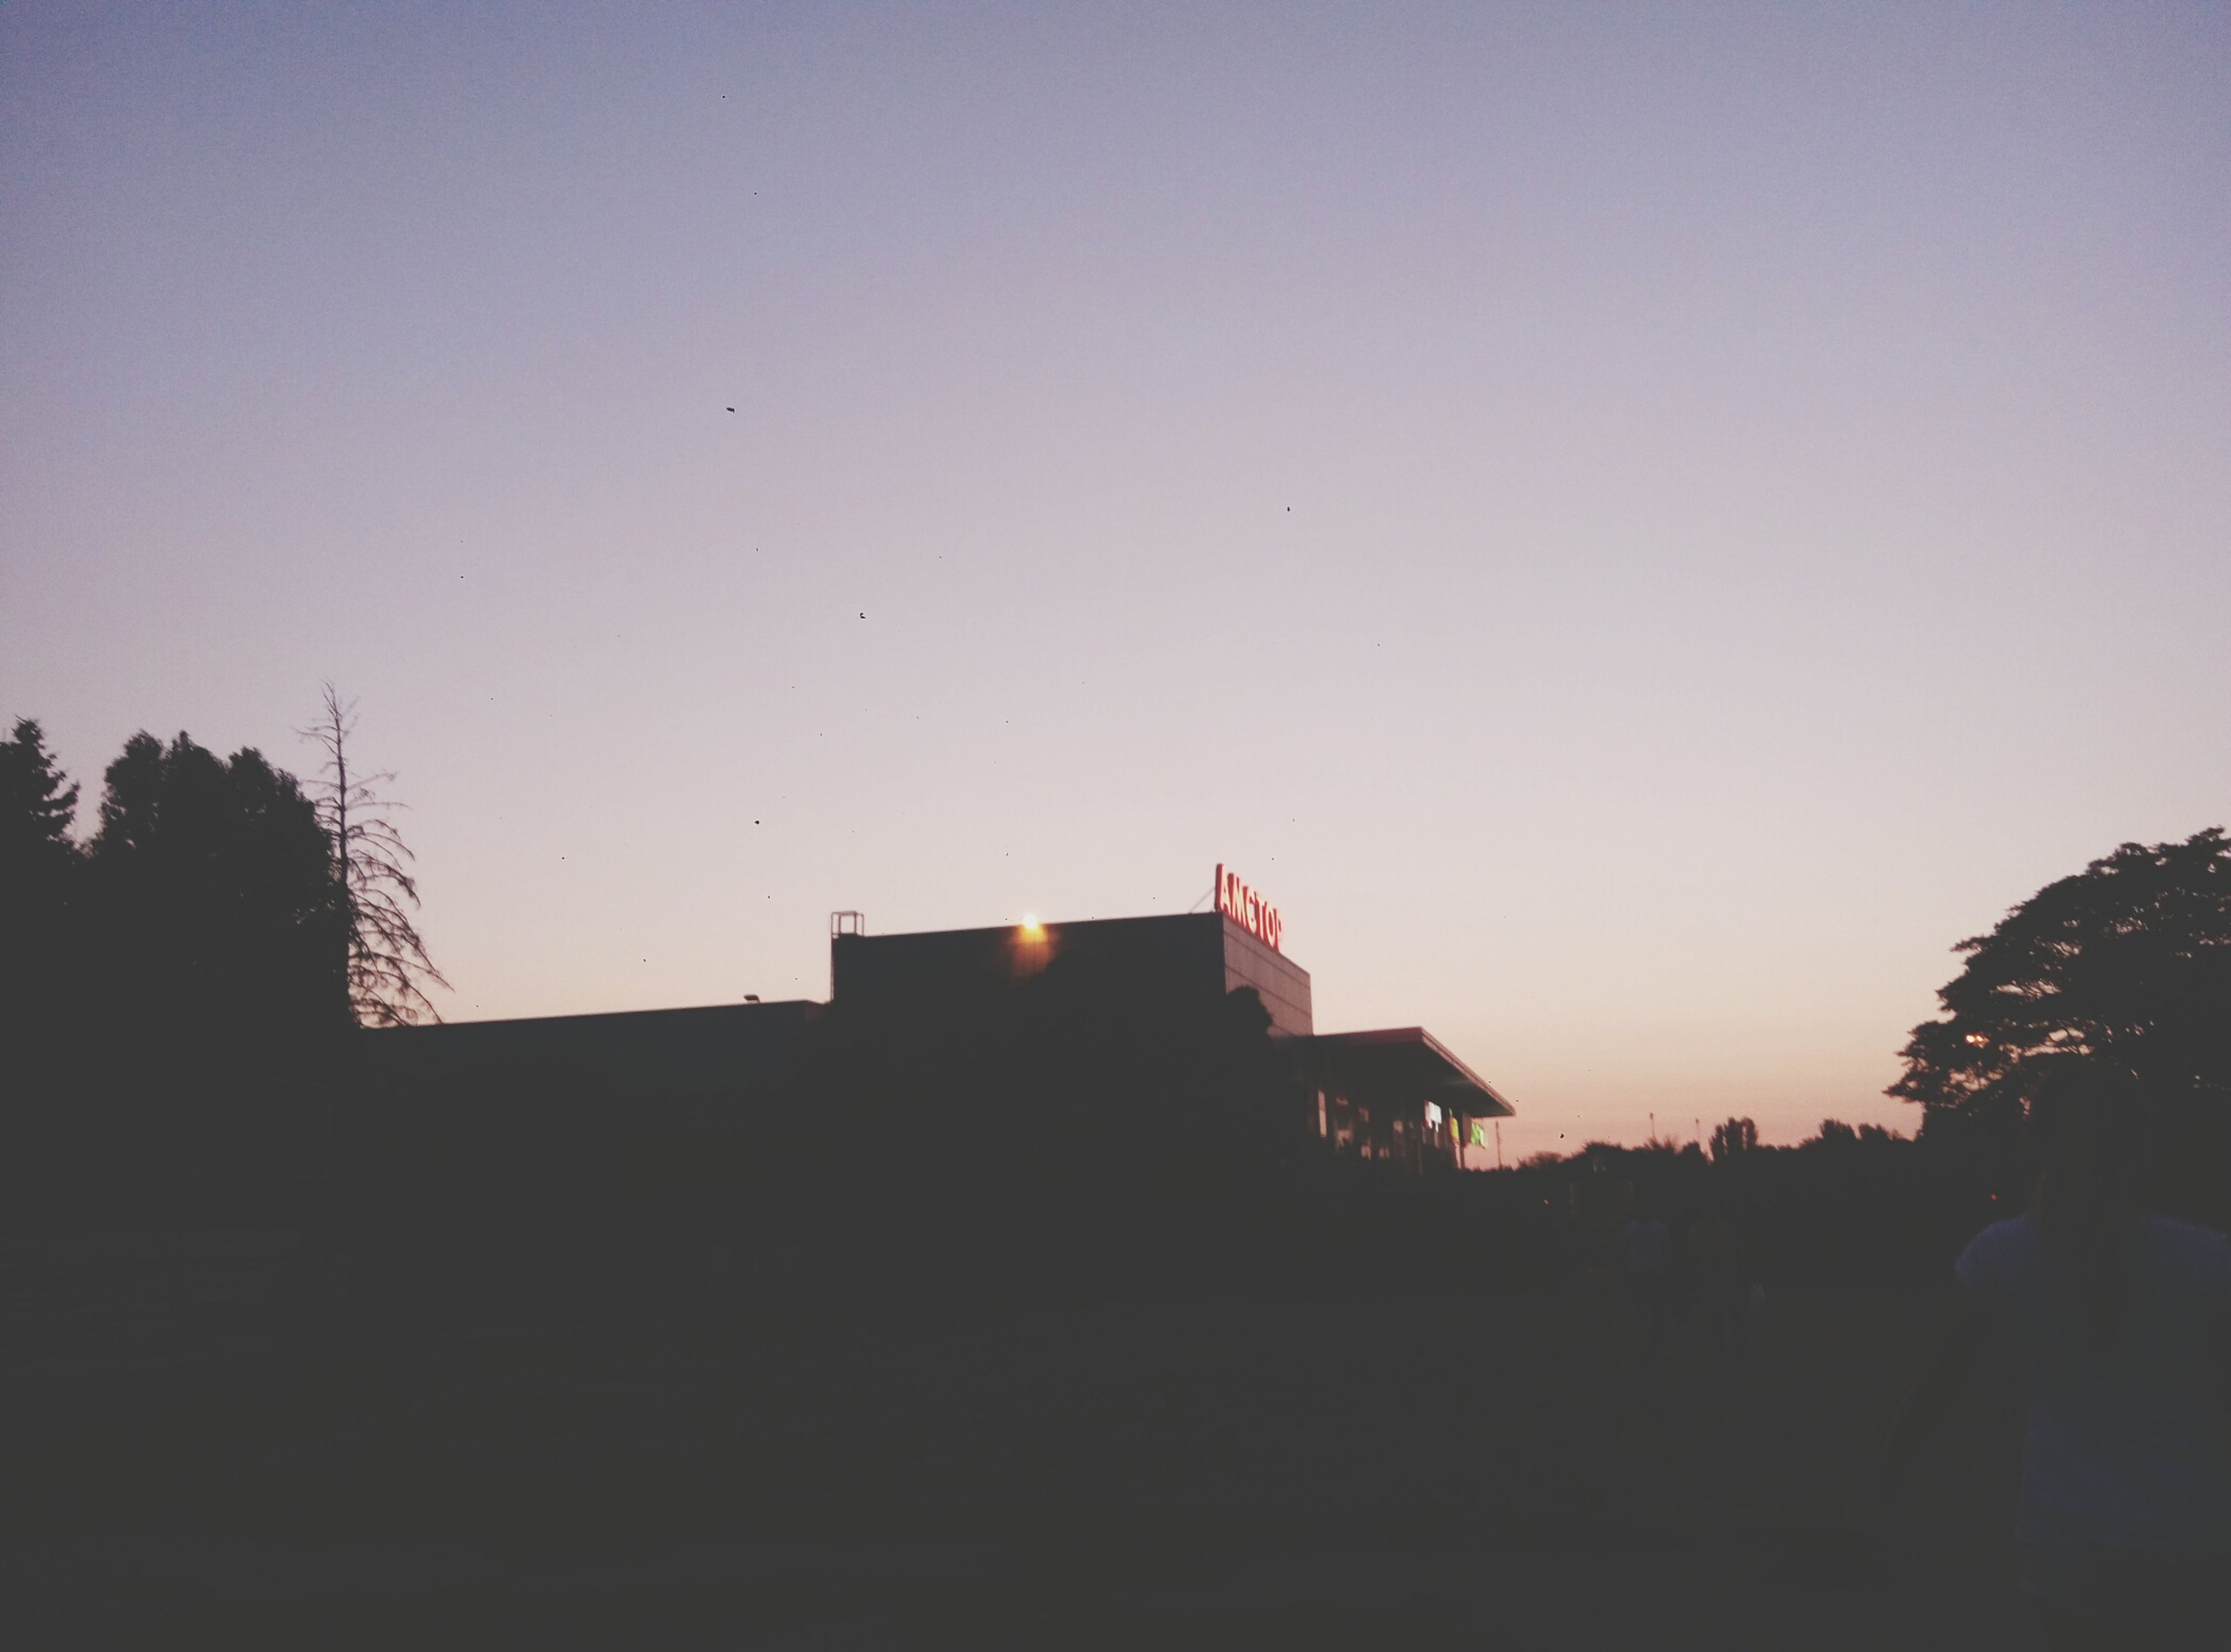 silhouette, architecture, built structure, building exterior, copy space, clear sky, dusk, house, outline, dark, outdoors, nature, no people, tranquility